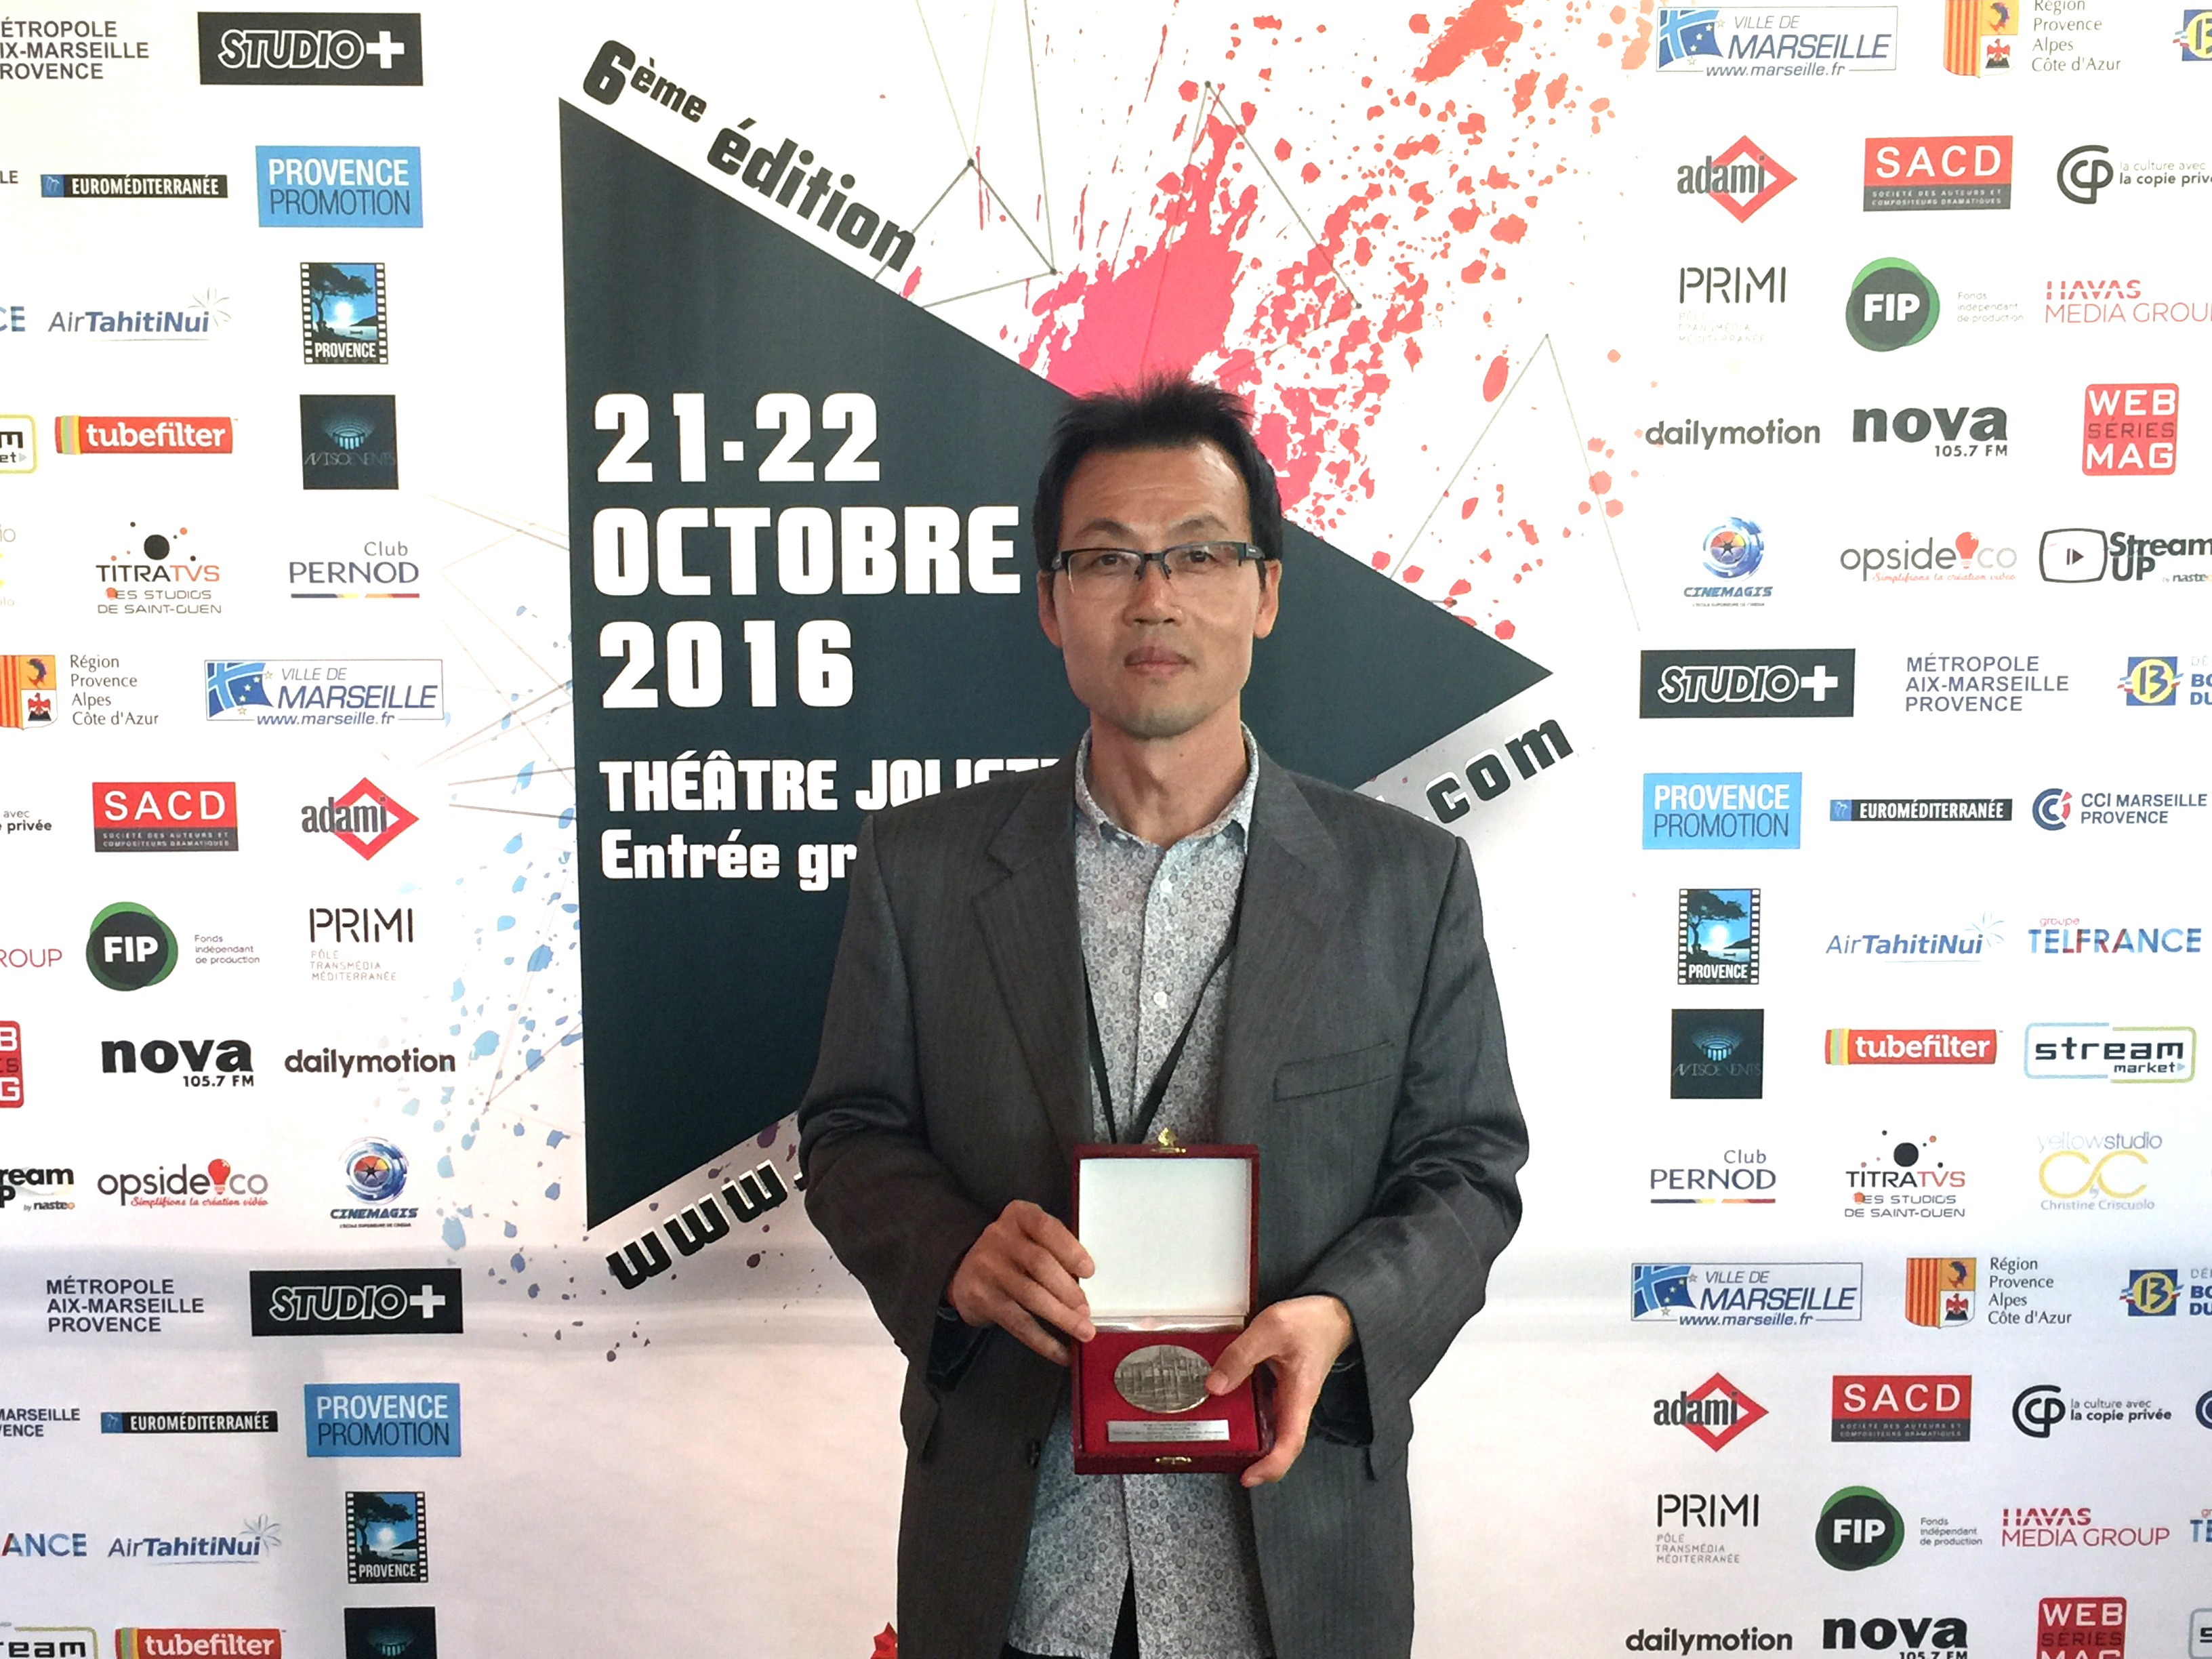 Mayer of City of Marseille, France (Culture Award) the 6th edition of Marseille Webfest 2016 at the opening ceremony in October 21, Young Man Kang was presented with the medal of the City of Marseille by Jean-Claude Gaudin, the Mayor of Marseille.